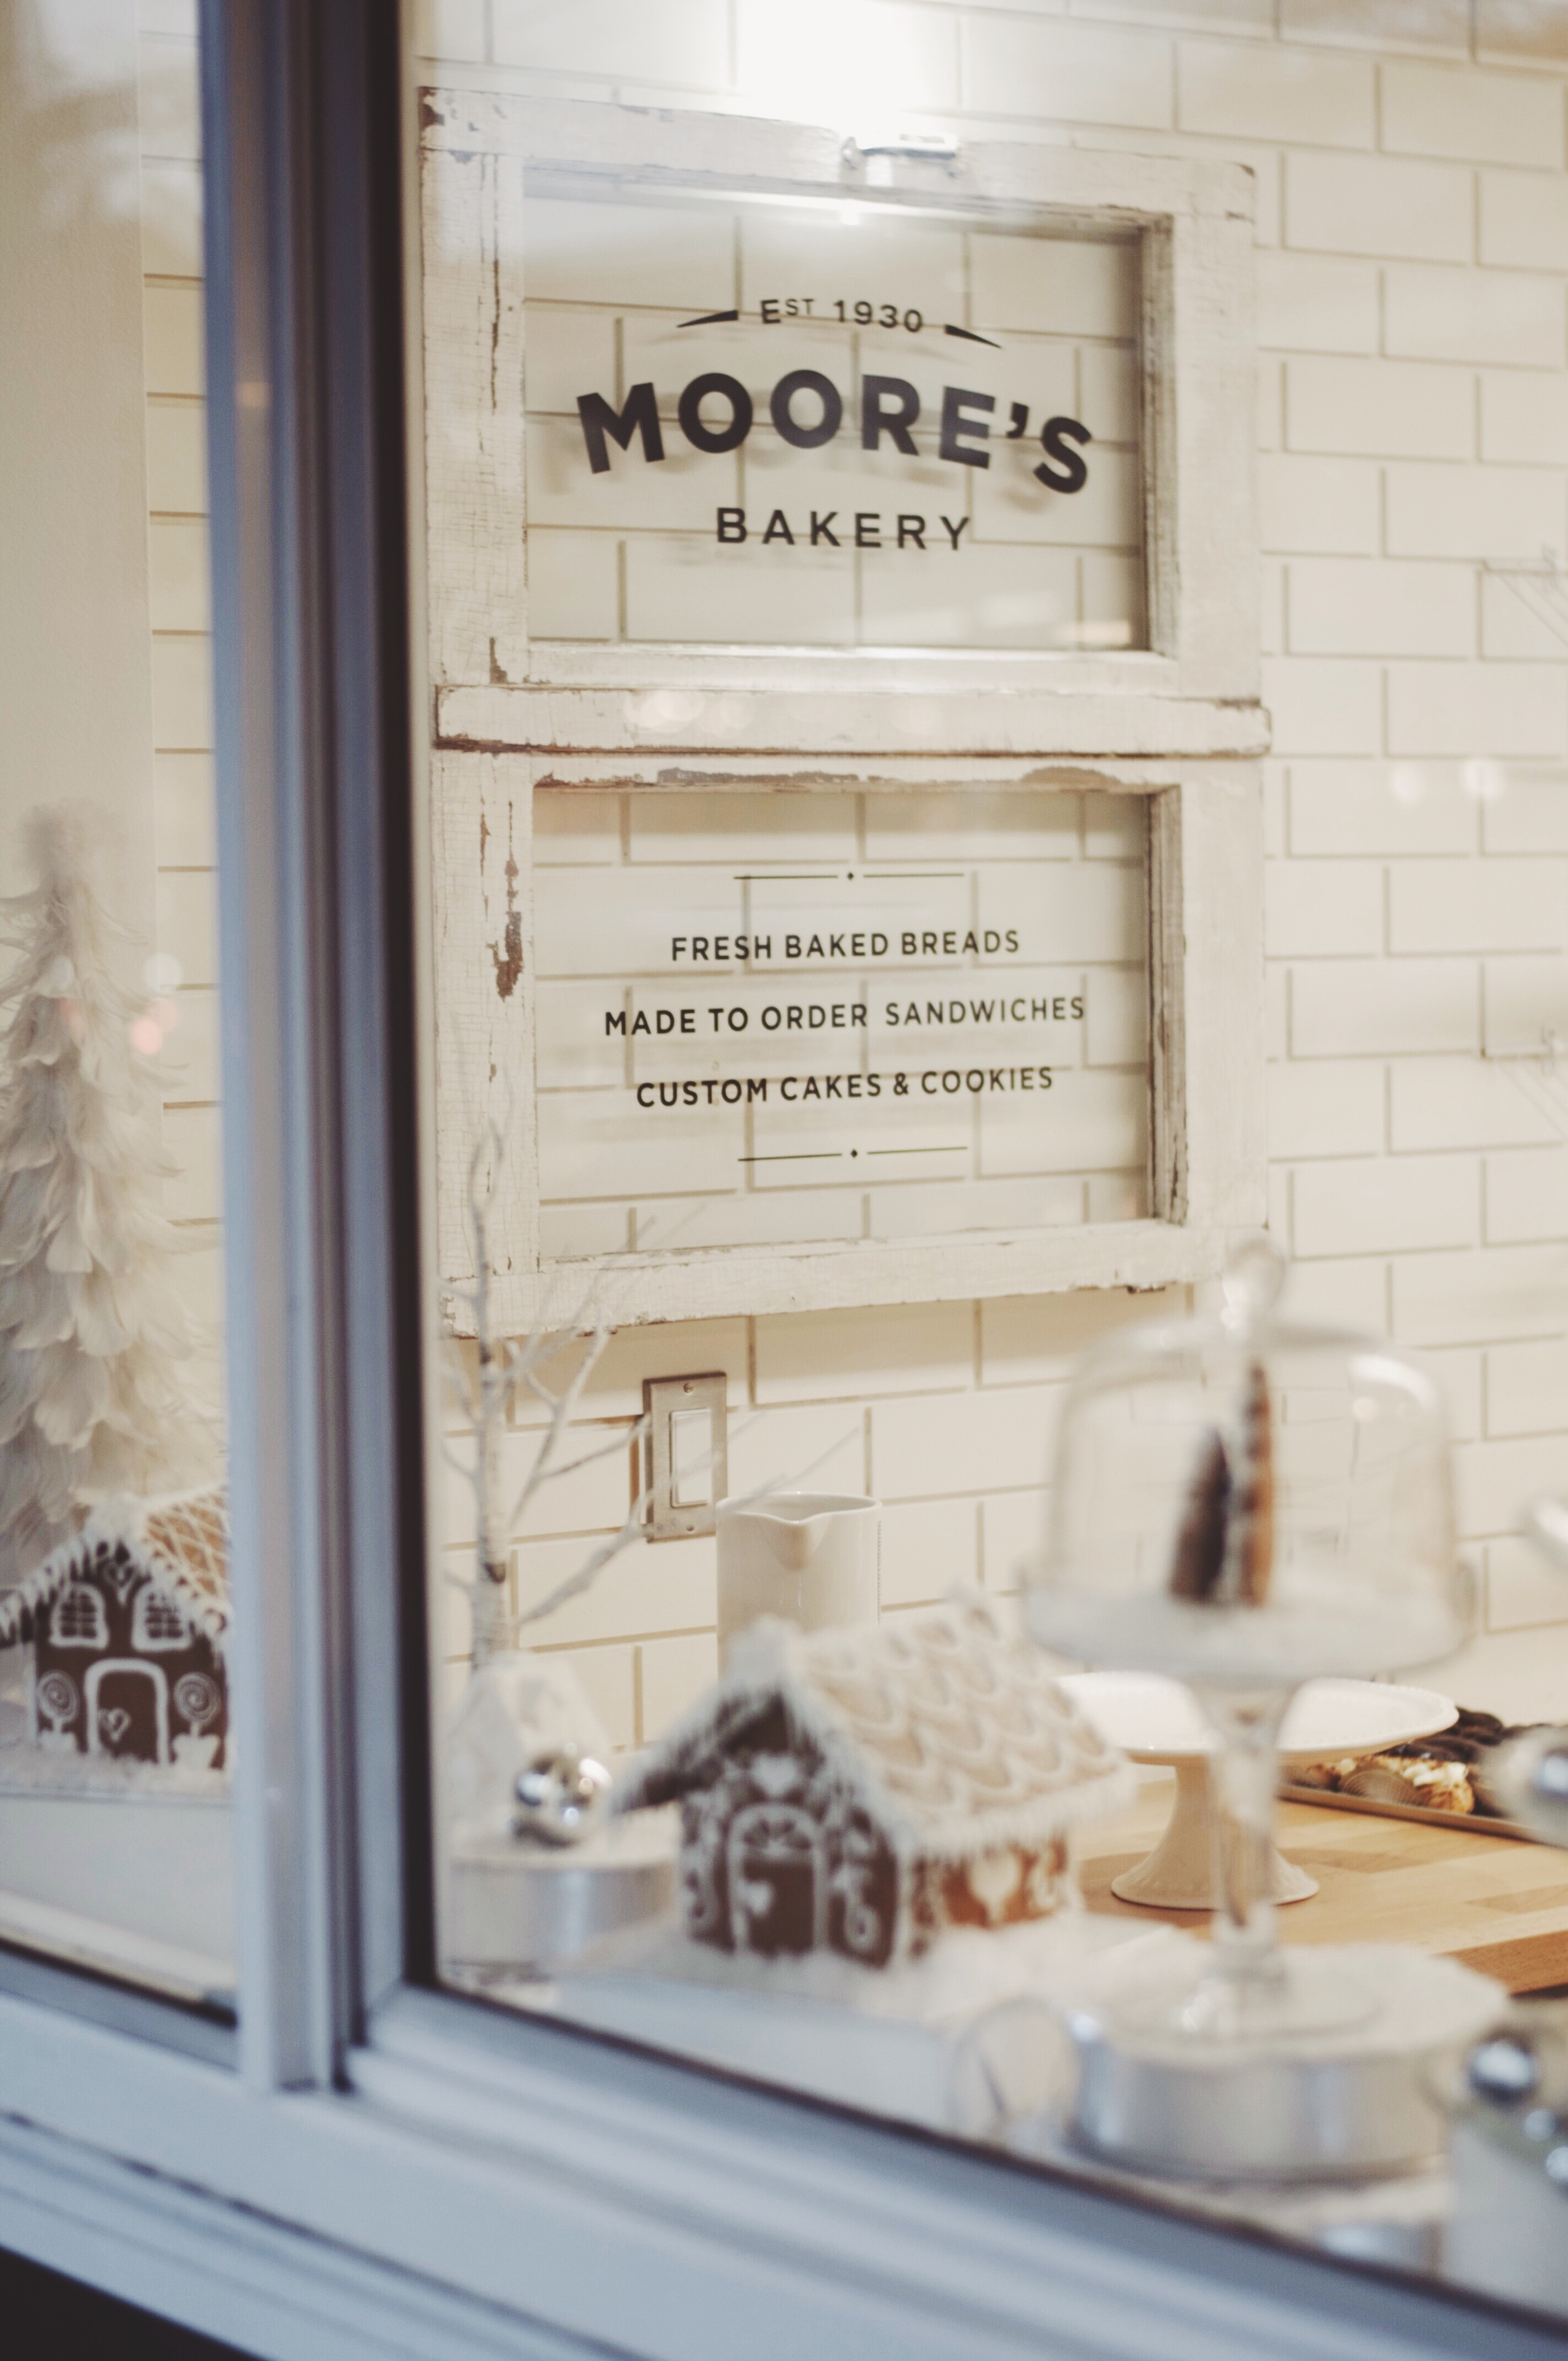 MOORE'S BAKERY